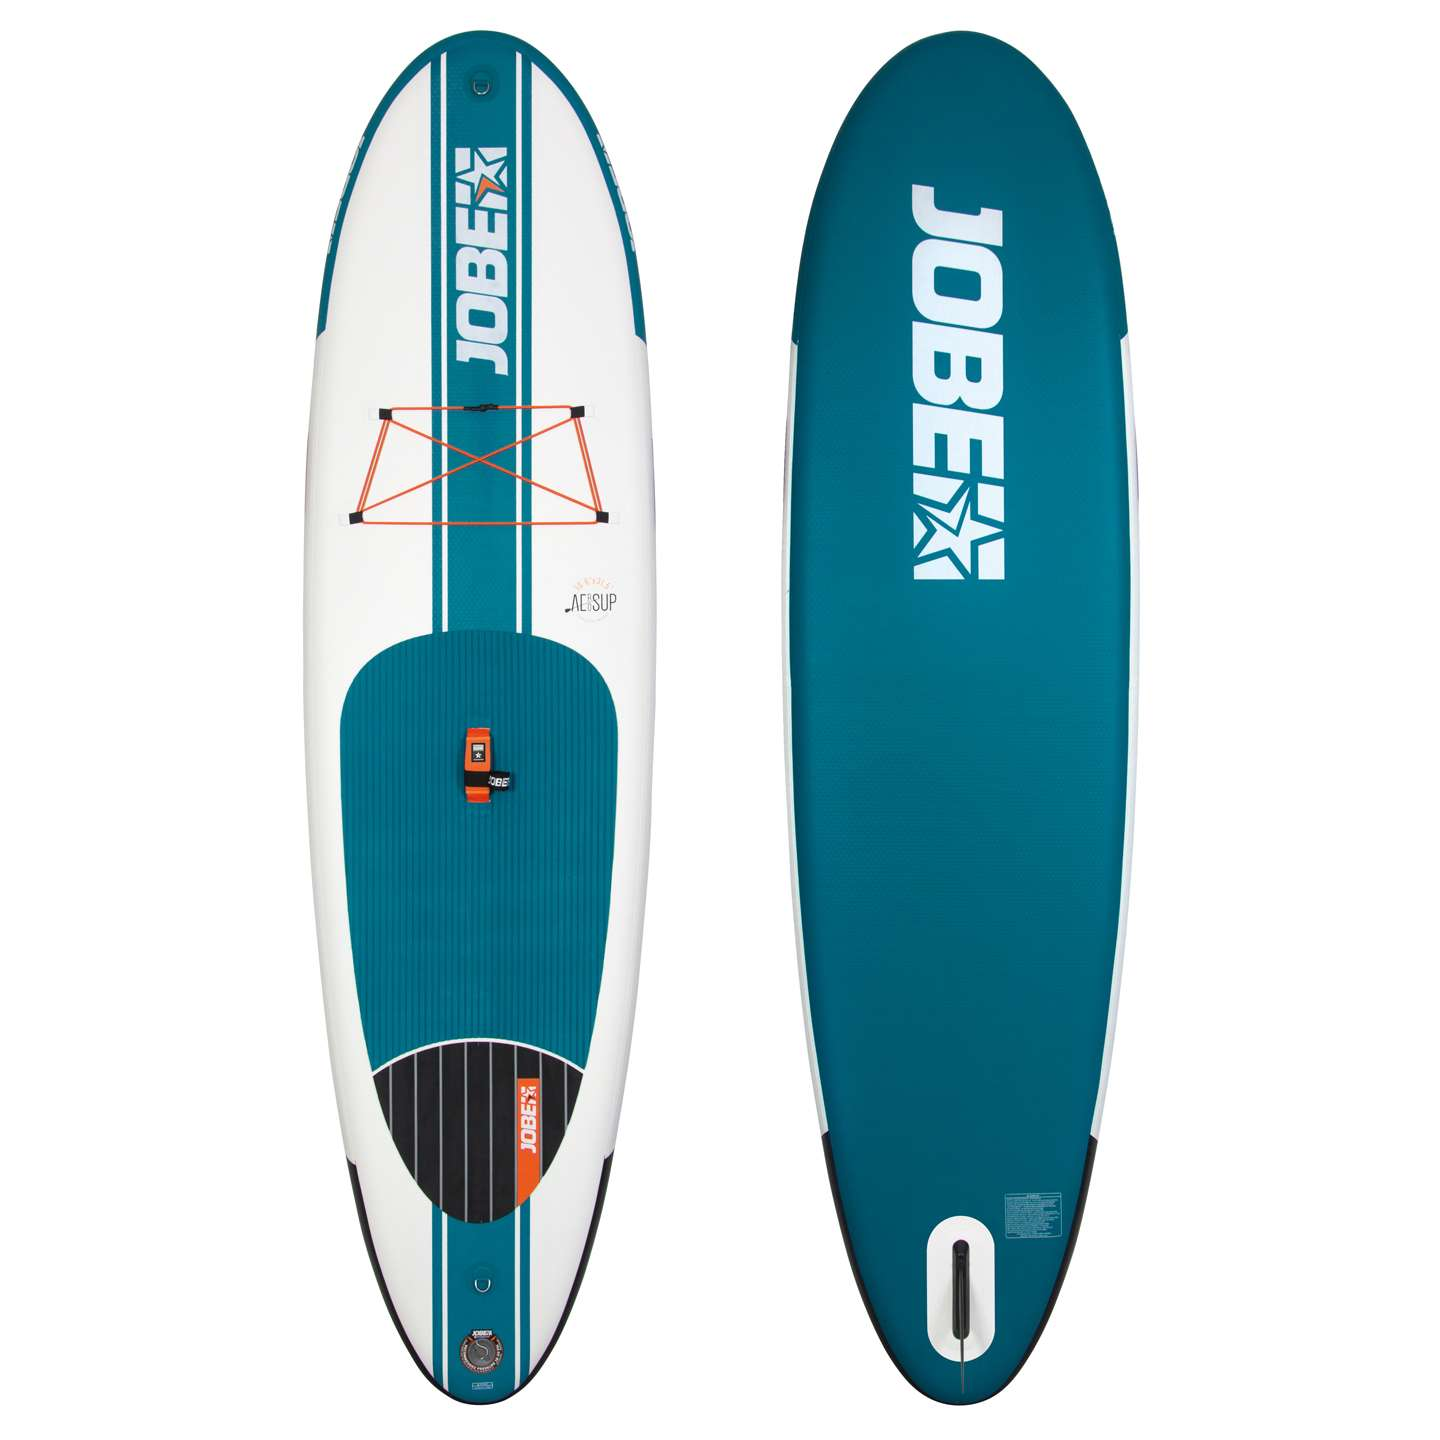 jobe aero 10 39 6 inflatable sup board 2016 king of watersports. Black Bedroom Furniture Sets. Home Design Ideas